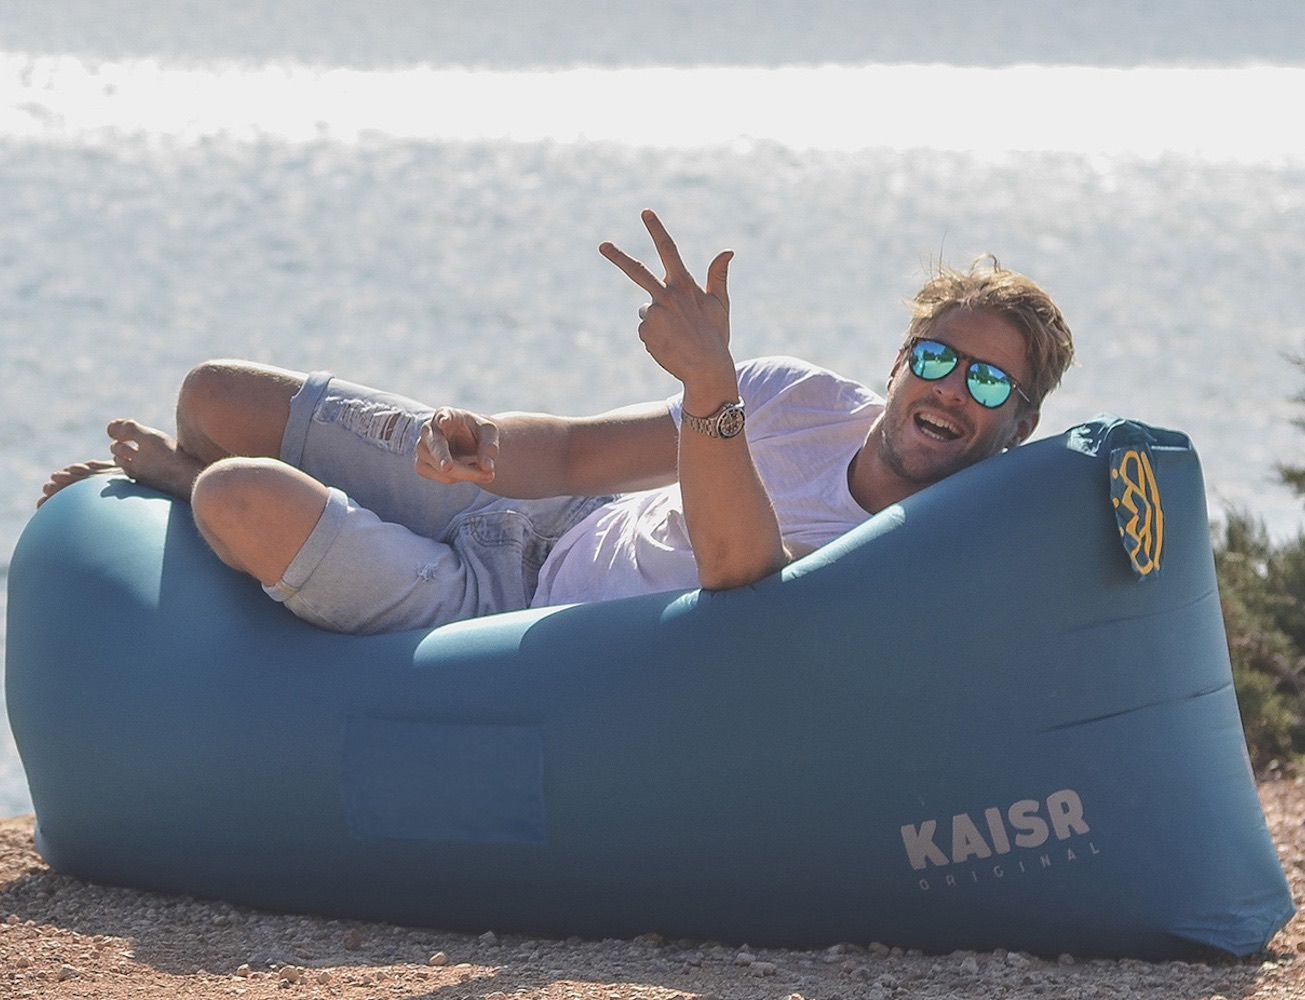 Kaisr Original An Inflatable Lounge For Ultimate